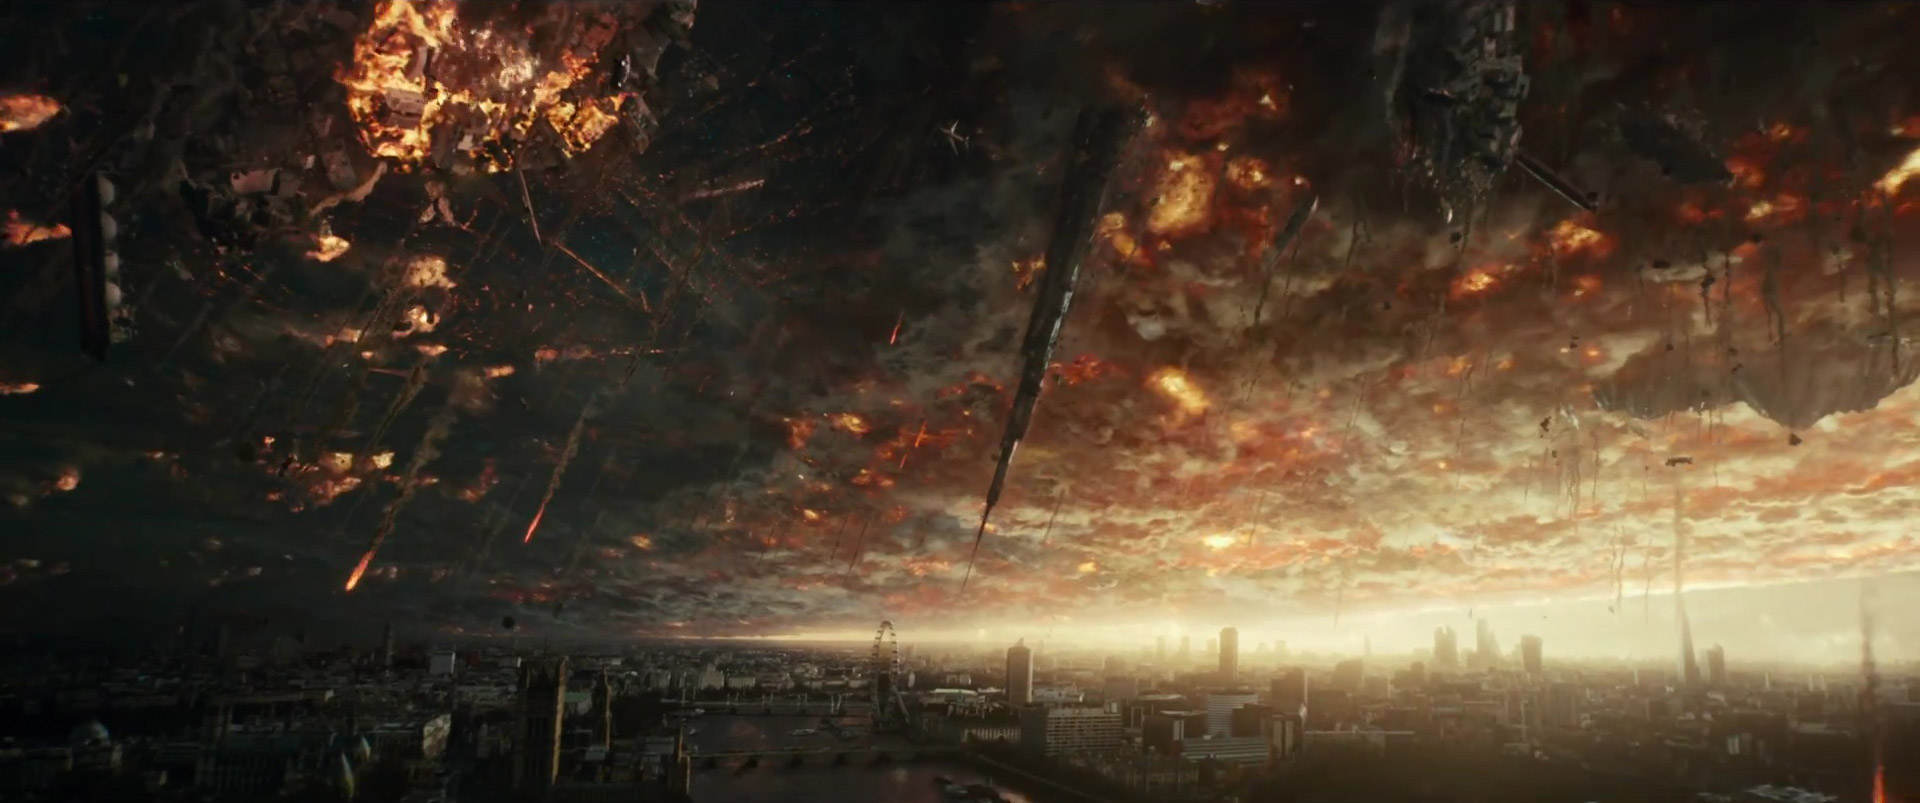 independence-day-insurgence-trailer-6-new